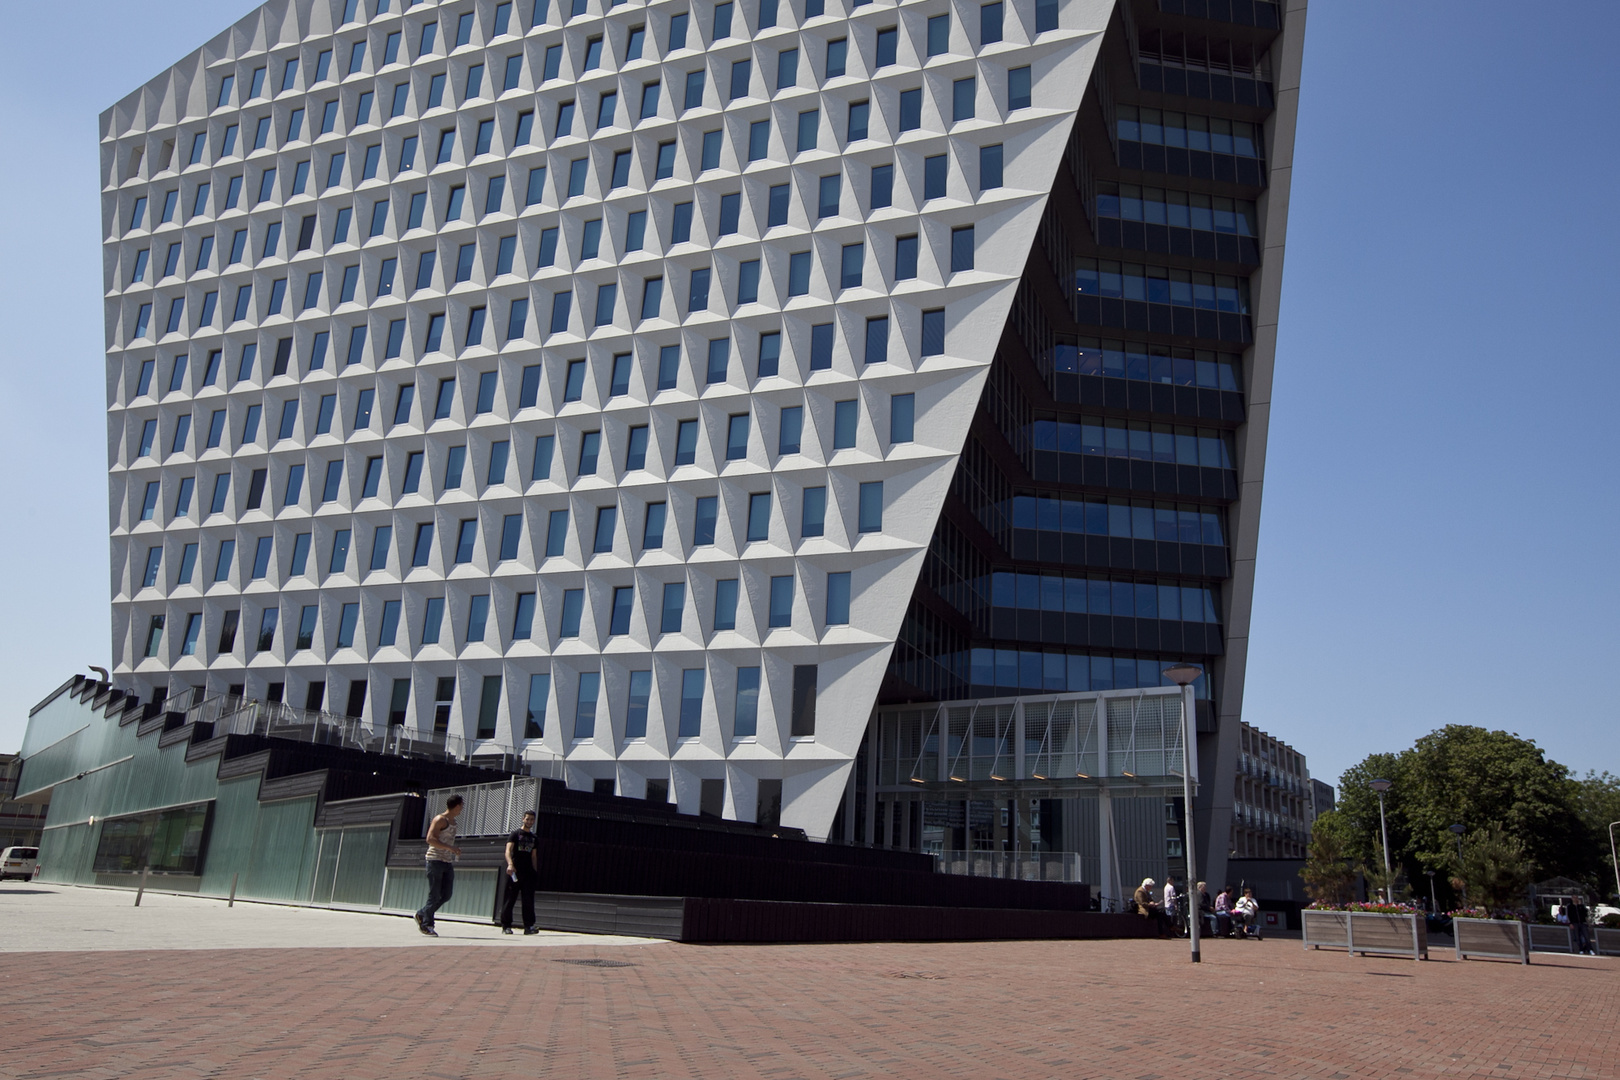 NL_TheHague_ Stadhuis_(New)_2012_RS-9.jpg